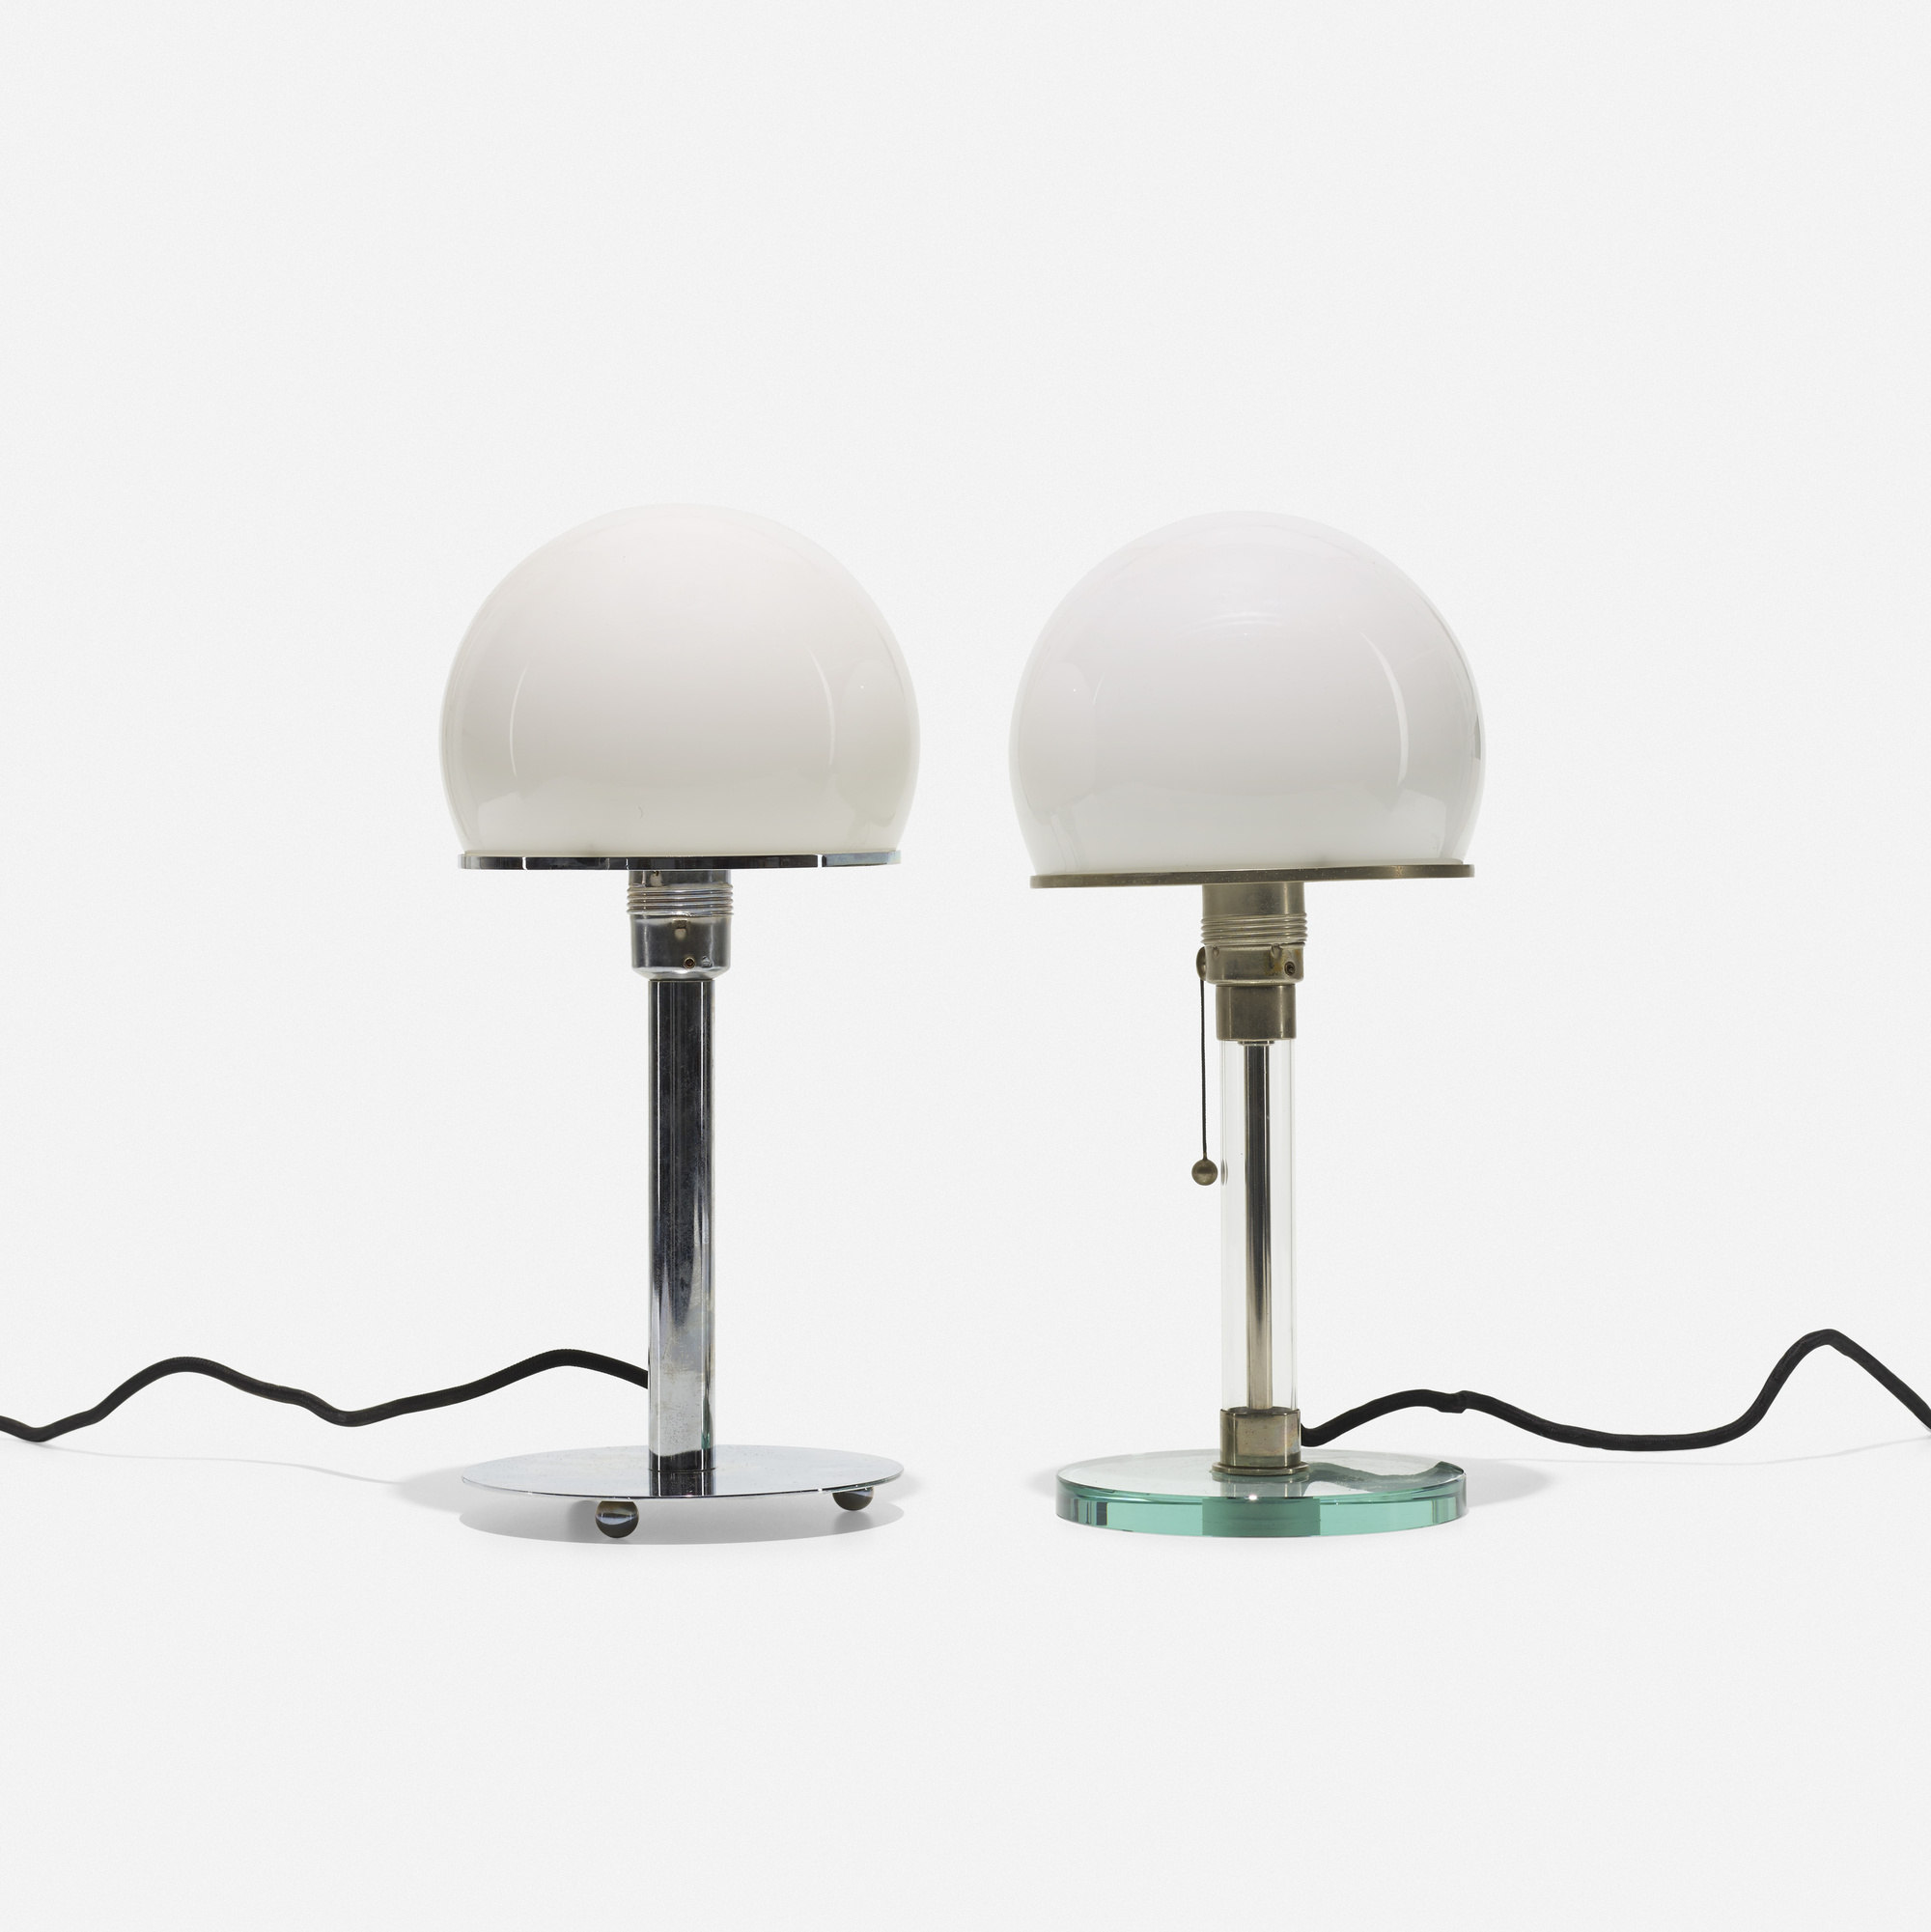 245: Wilhelm Wagenfeld / table lamps, set of two (1 of 1)